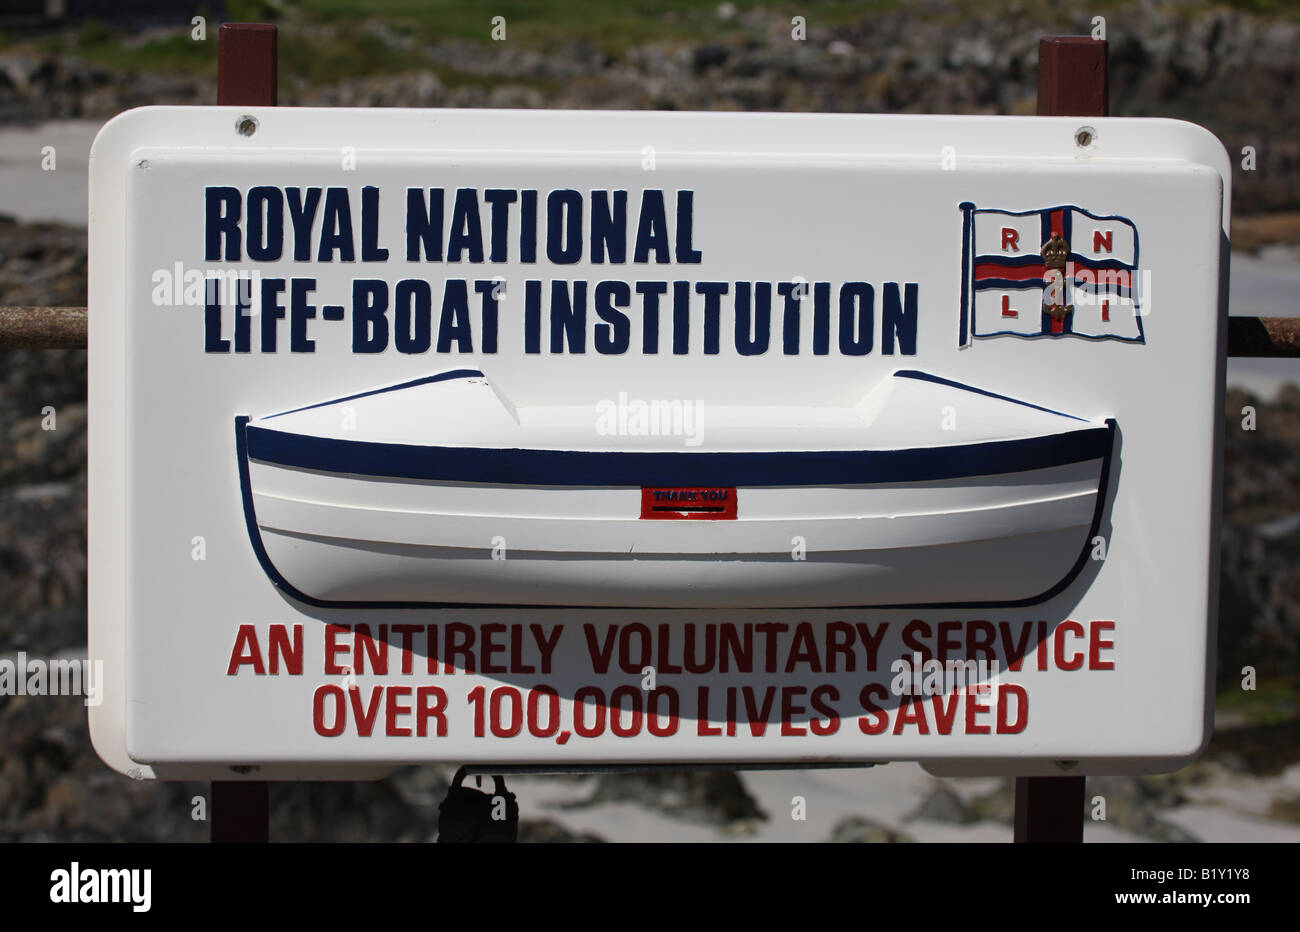 RNLI Lifeboat donation collection box - Stock Image